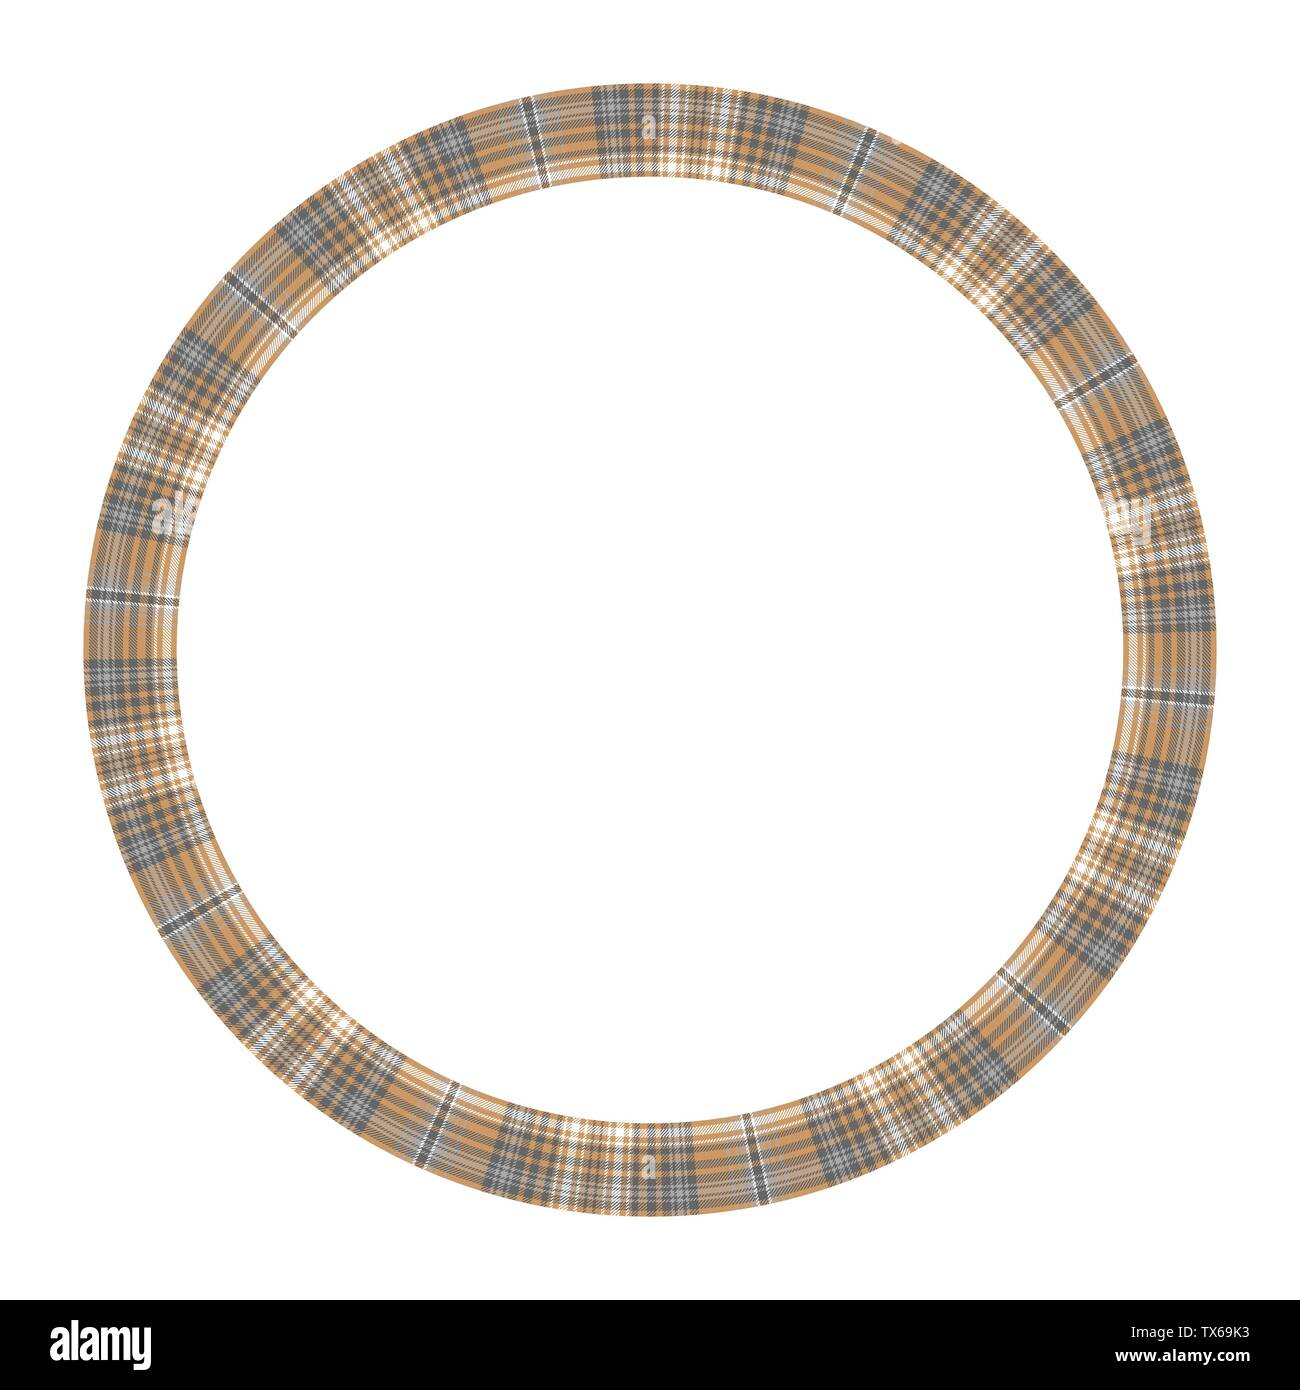 Round frame vector vintage pattern design template. Circle border designs plaid fabric texture. Scottish tartan background for collage art, gif card, - Stock Vector